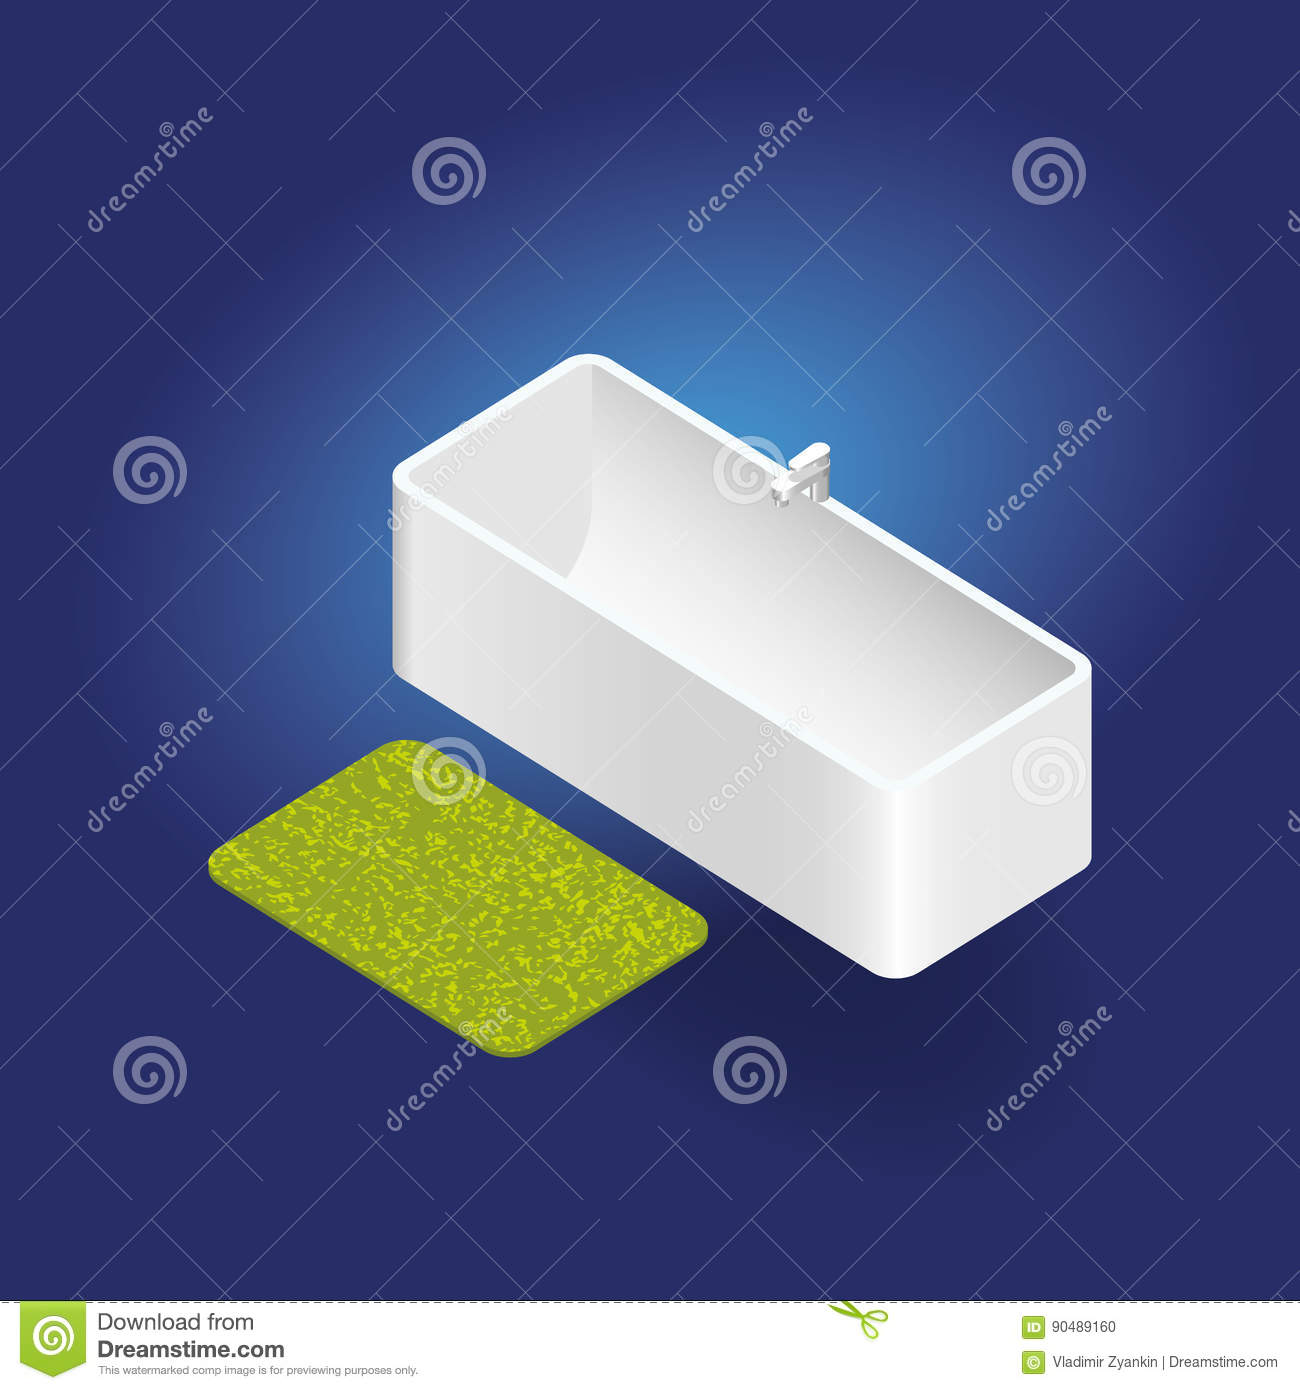 3d Isometric Vector Bathtub With Rug Stock Vector - Illustration of ...